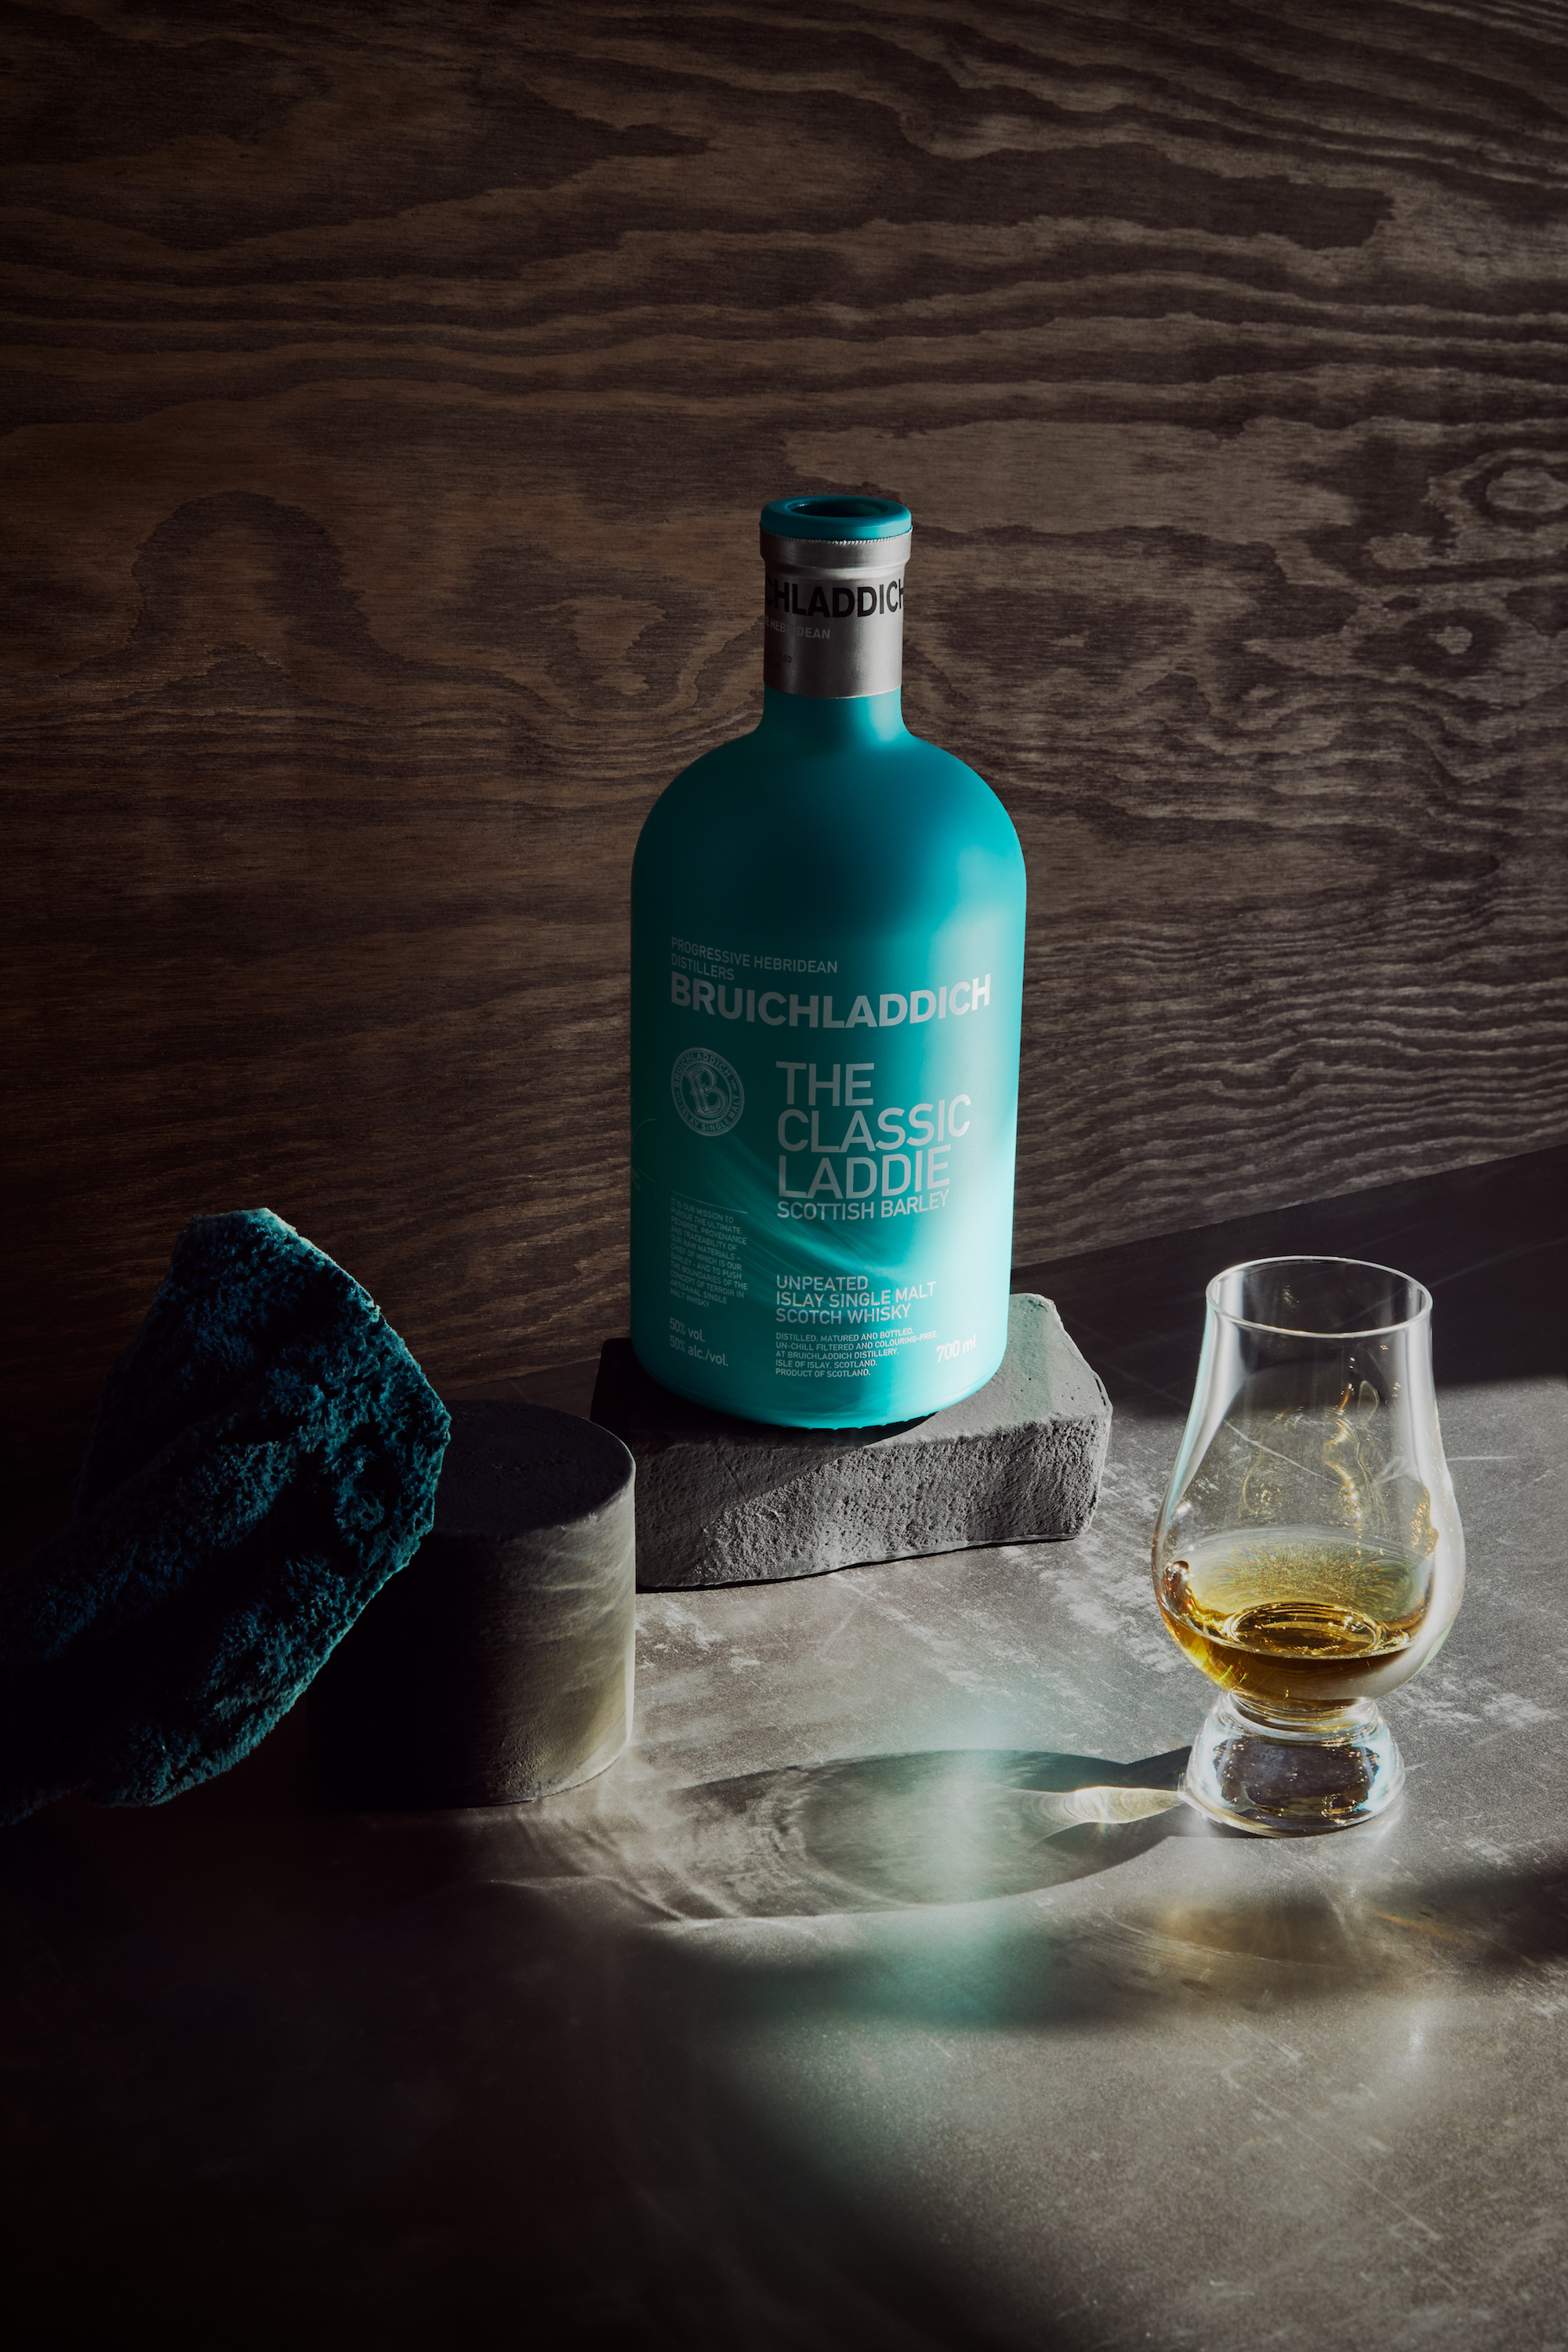 Classic Laddie with dram glass